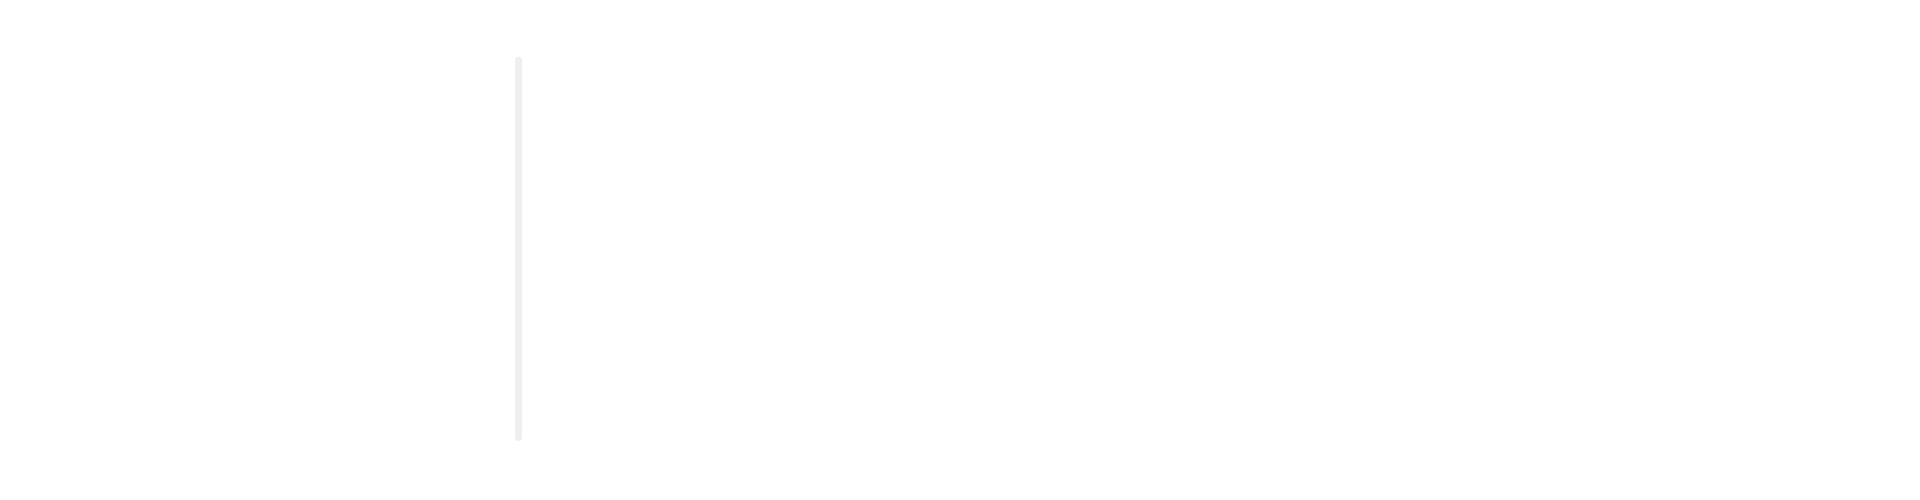 header - fight night fire pits.png